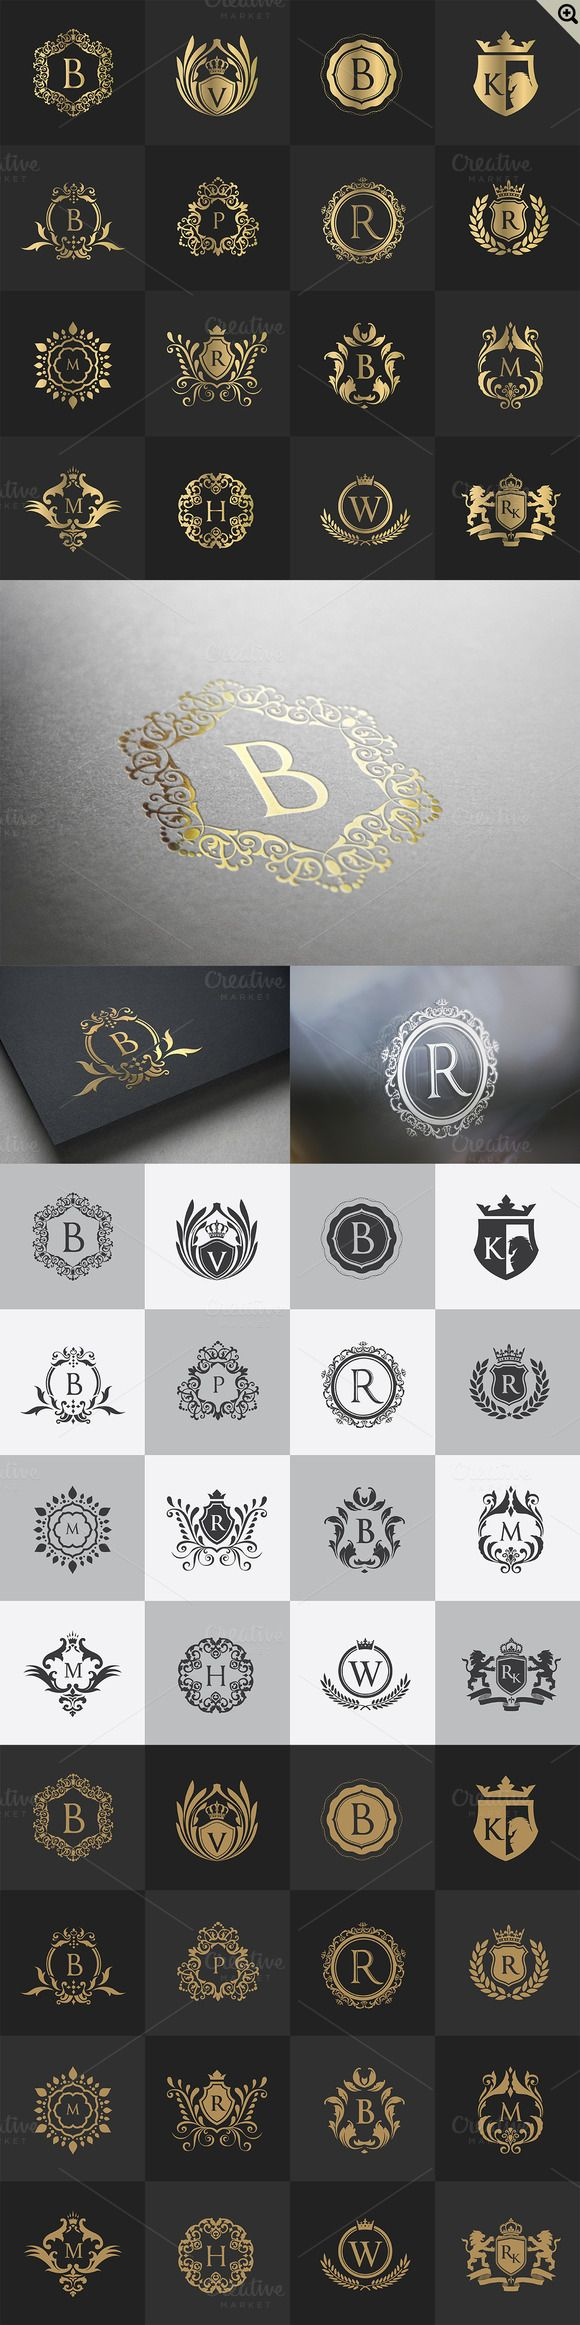 32 Luxury logo Calligraphic by Super Pig Shop on @creativemarket